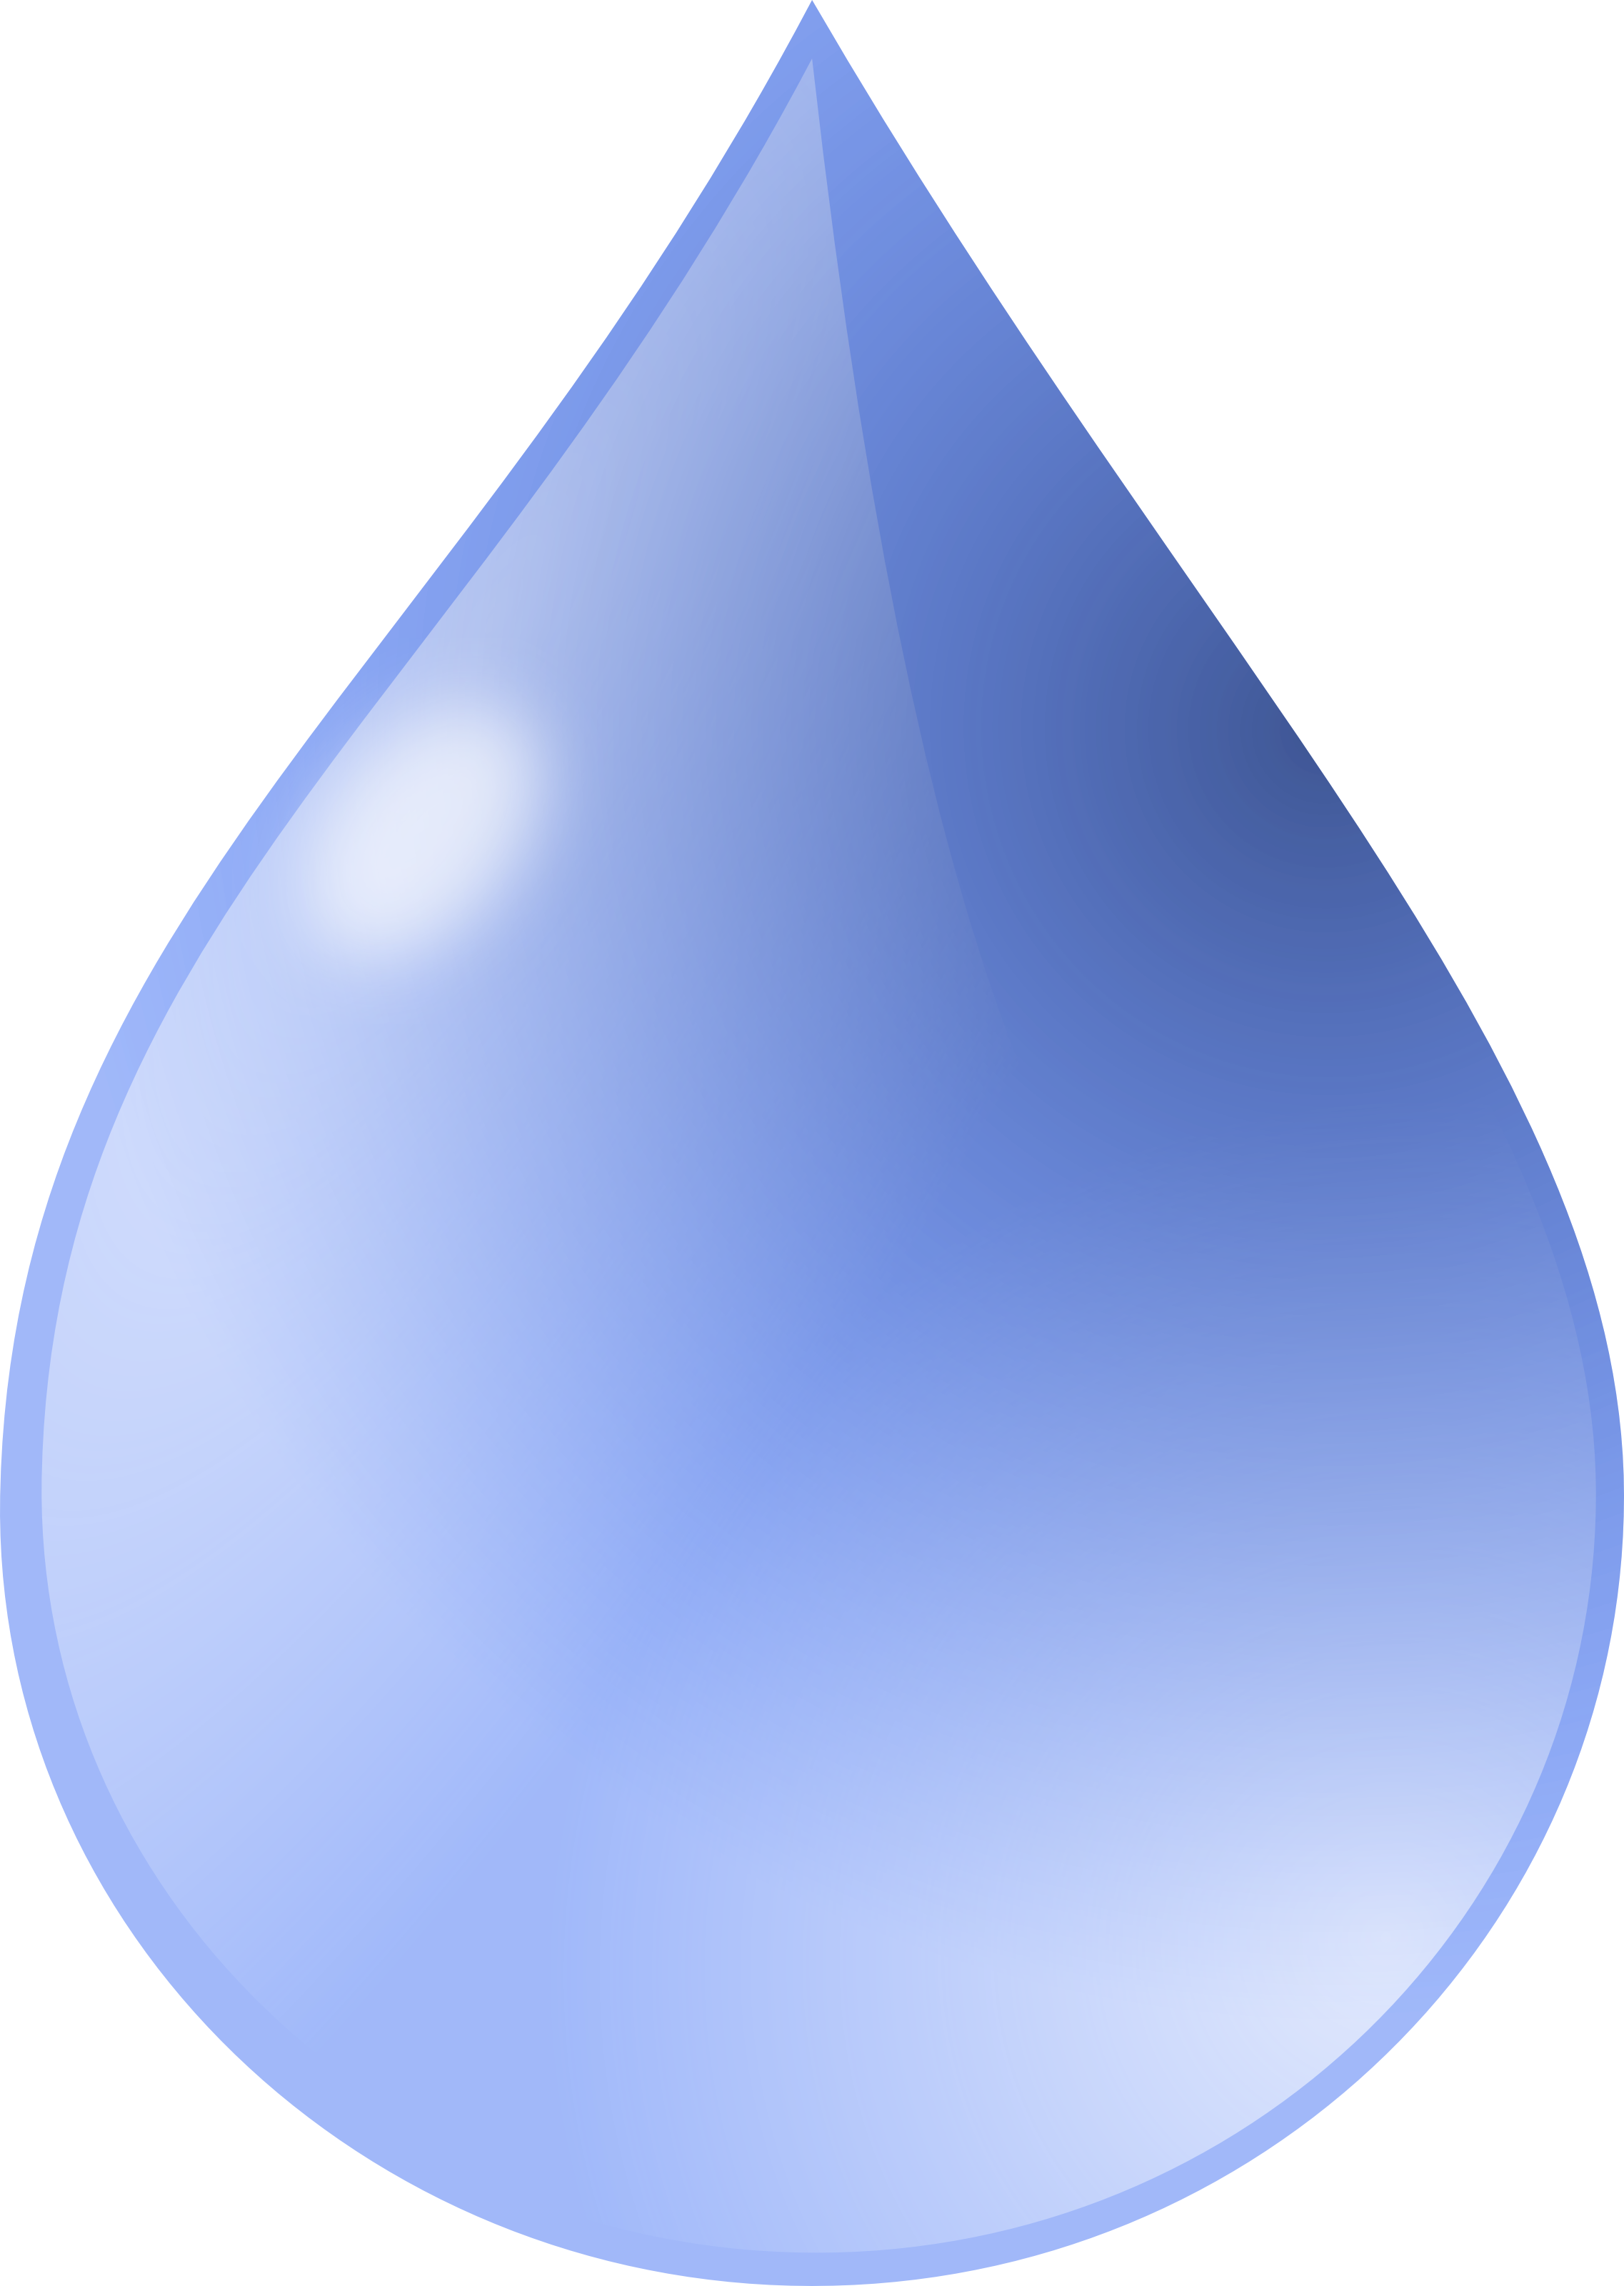 Waterdrop clipart water splash #8